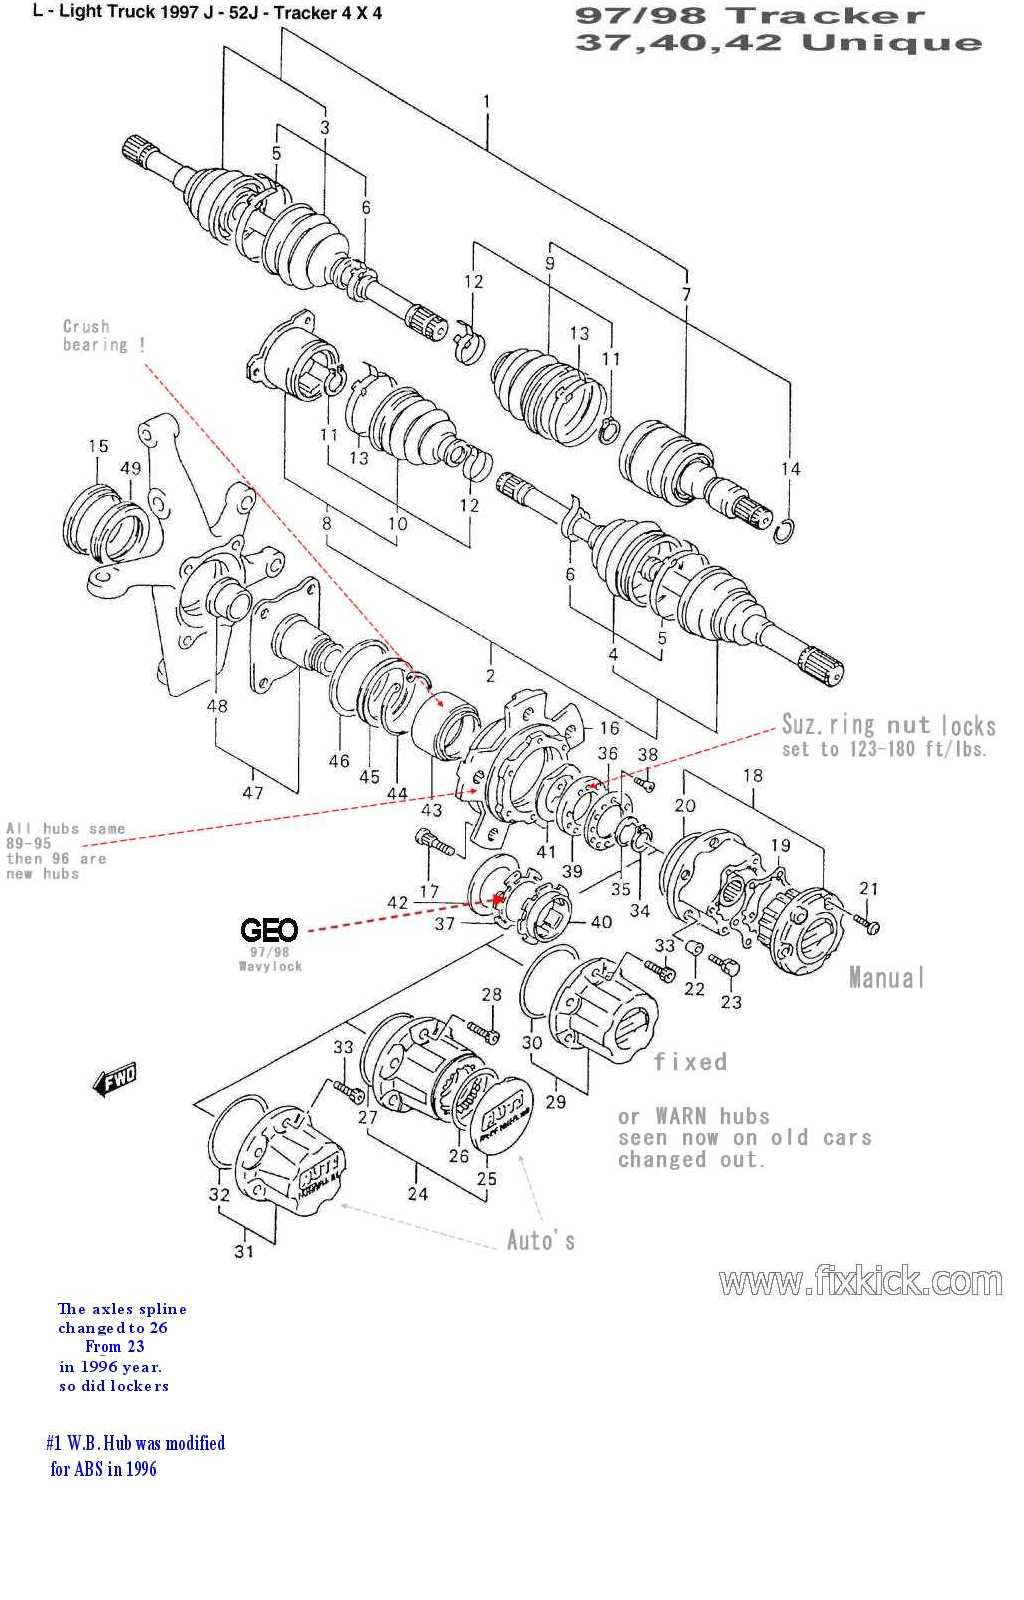 Hard To Find Parts Some Are Very 1992 Geo Tracker Engine Diagram 97 98 Front Axle Down Grade Kit From Suzuki With 6x2